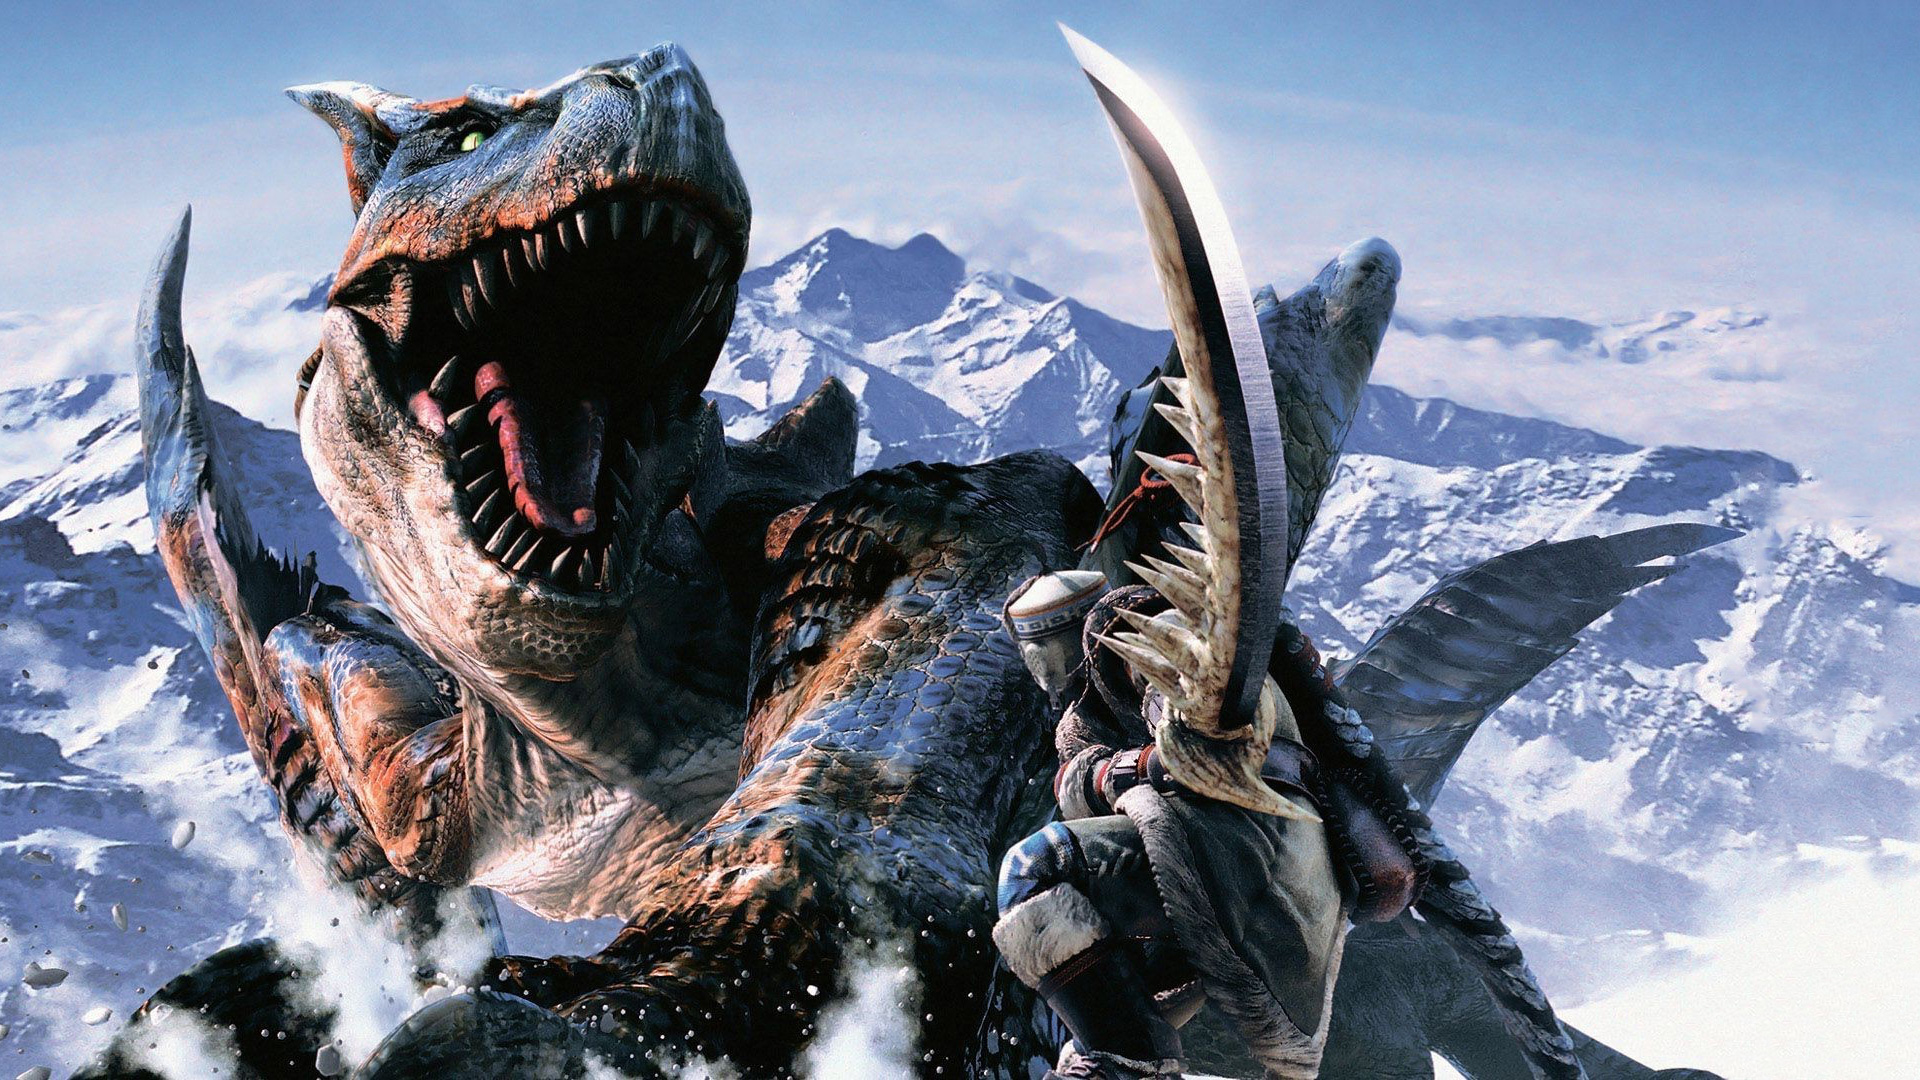 1080p monster hunter wallpaper hd